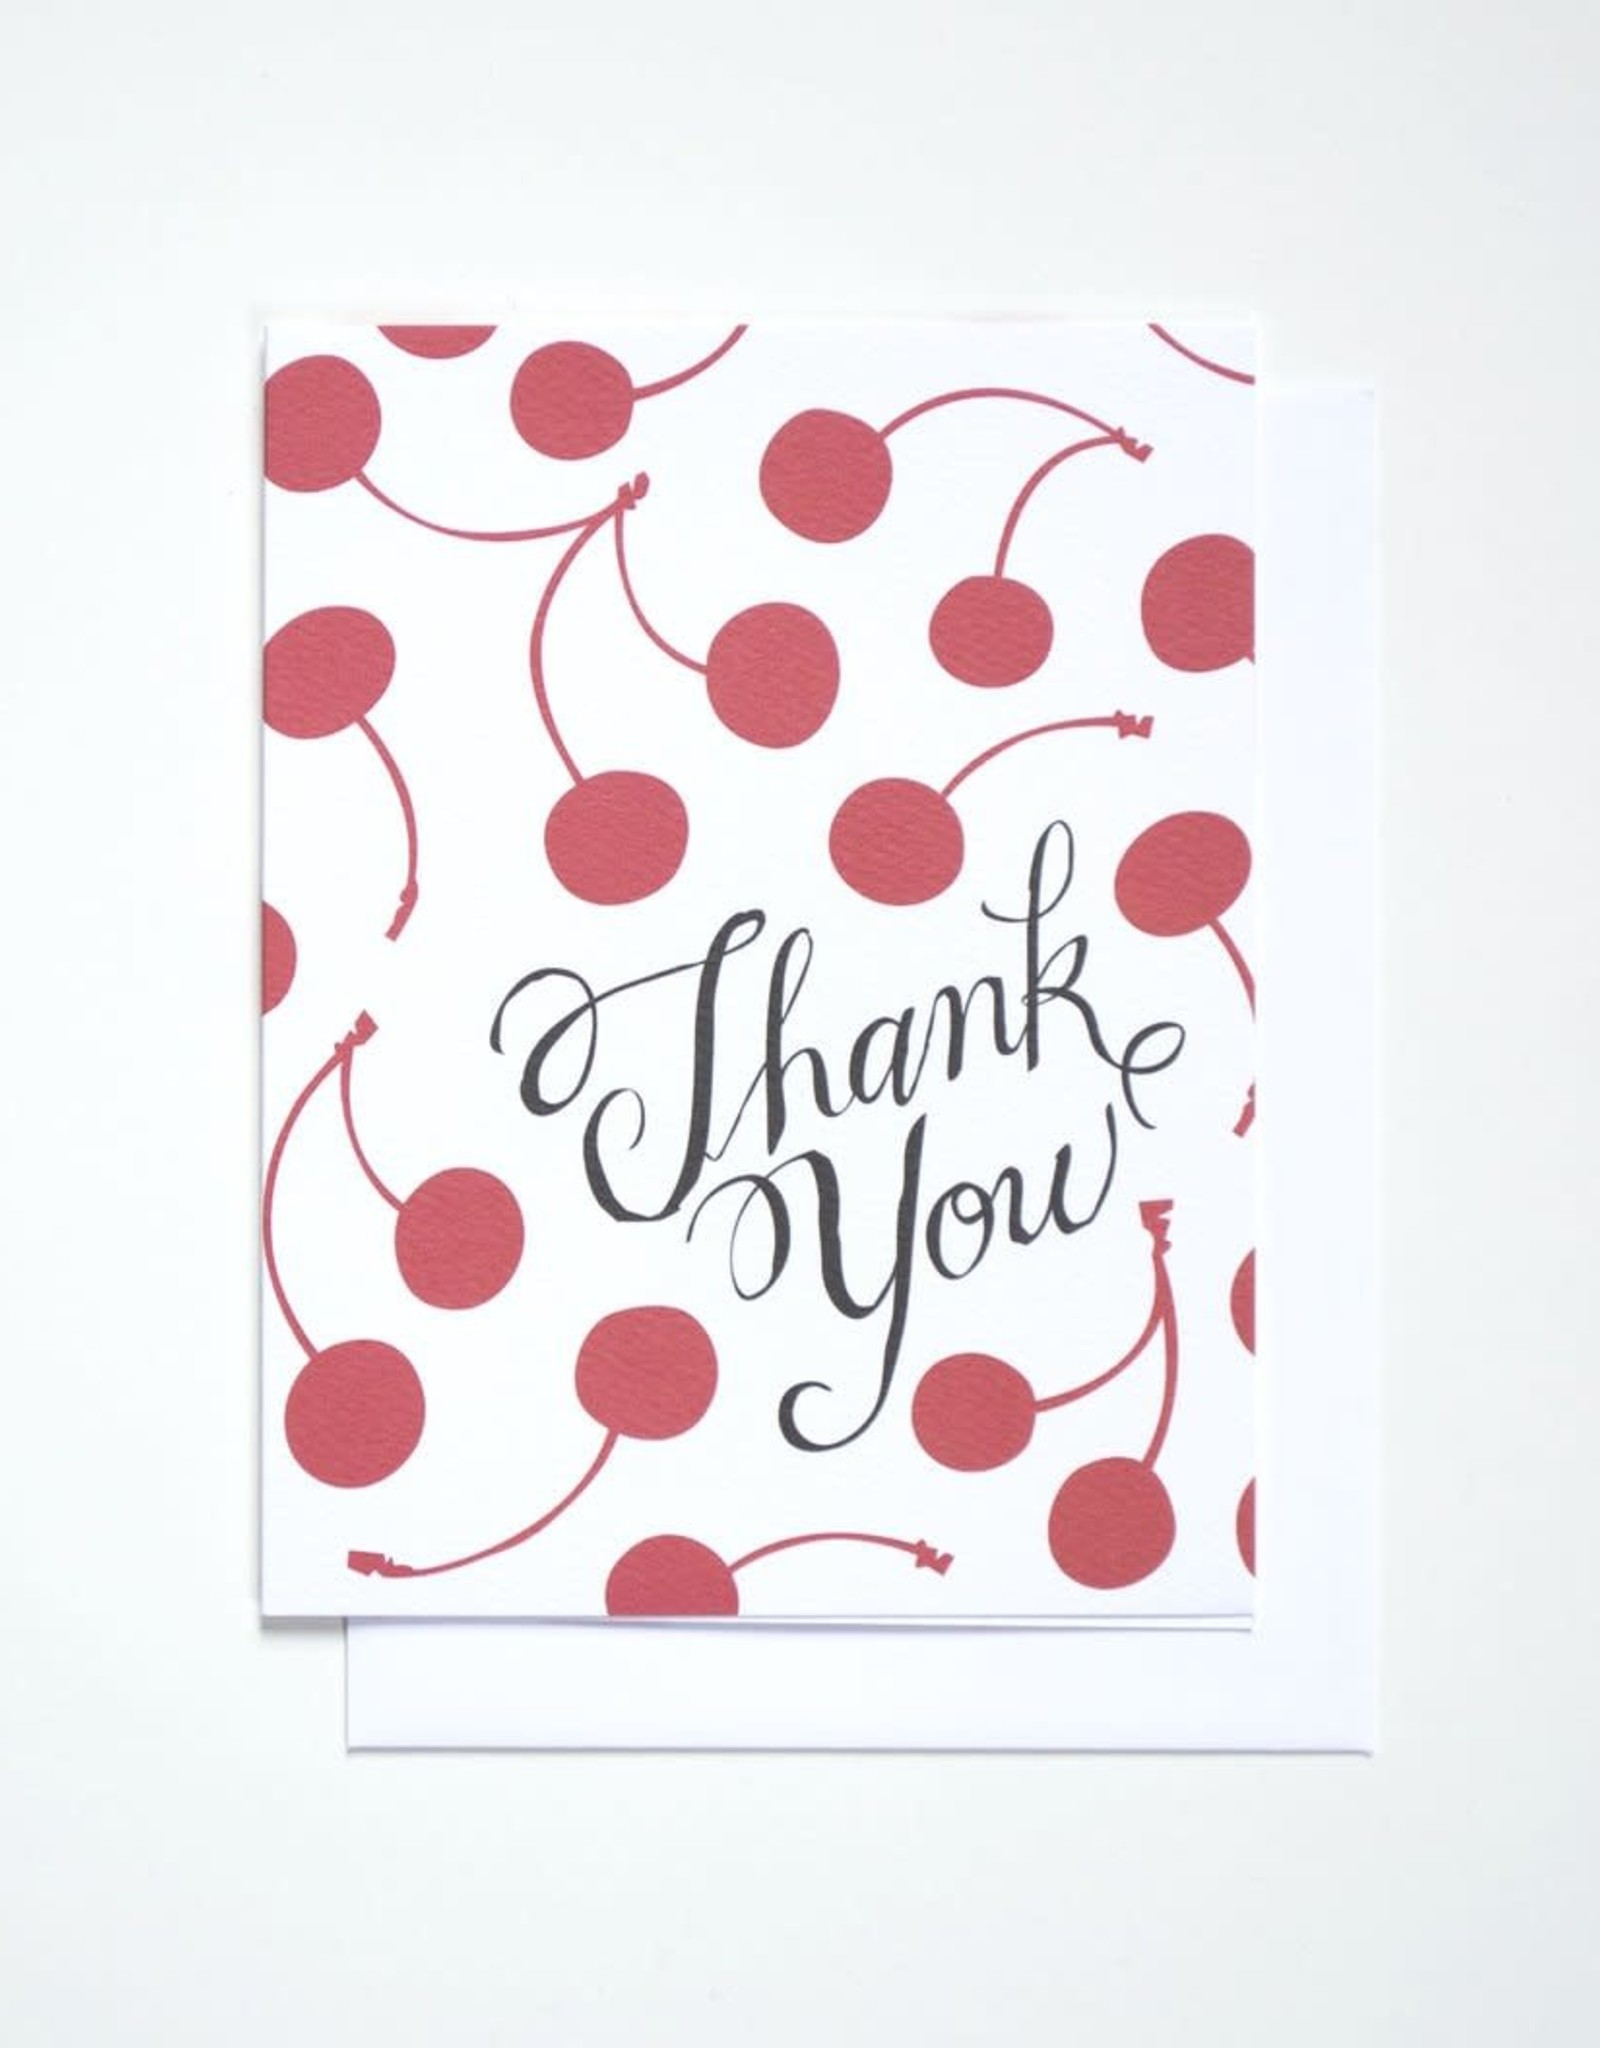 Banquet Atelier & Workshop Thank You Cherries - Note Card